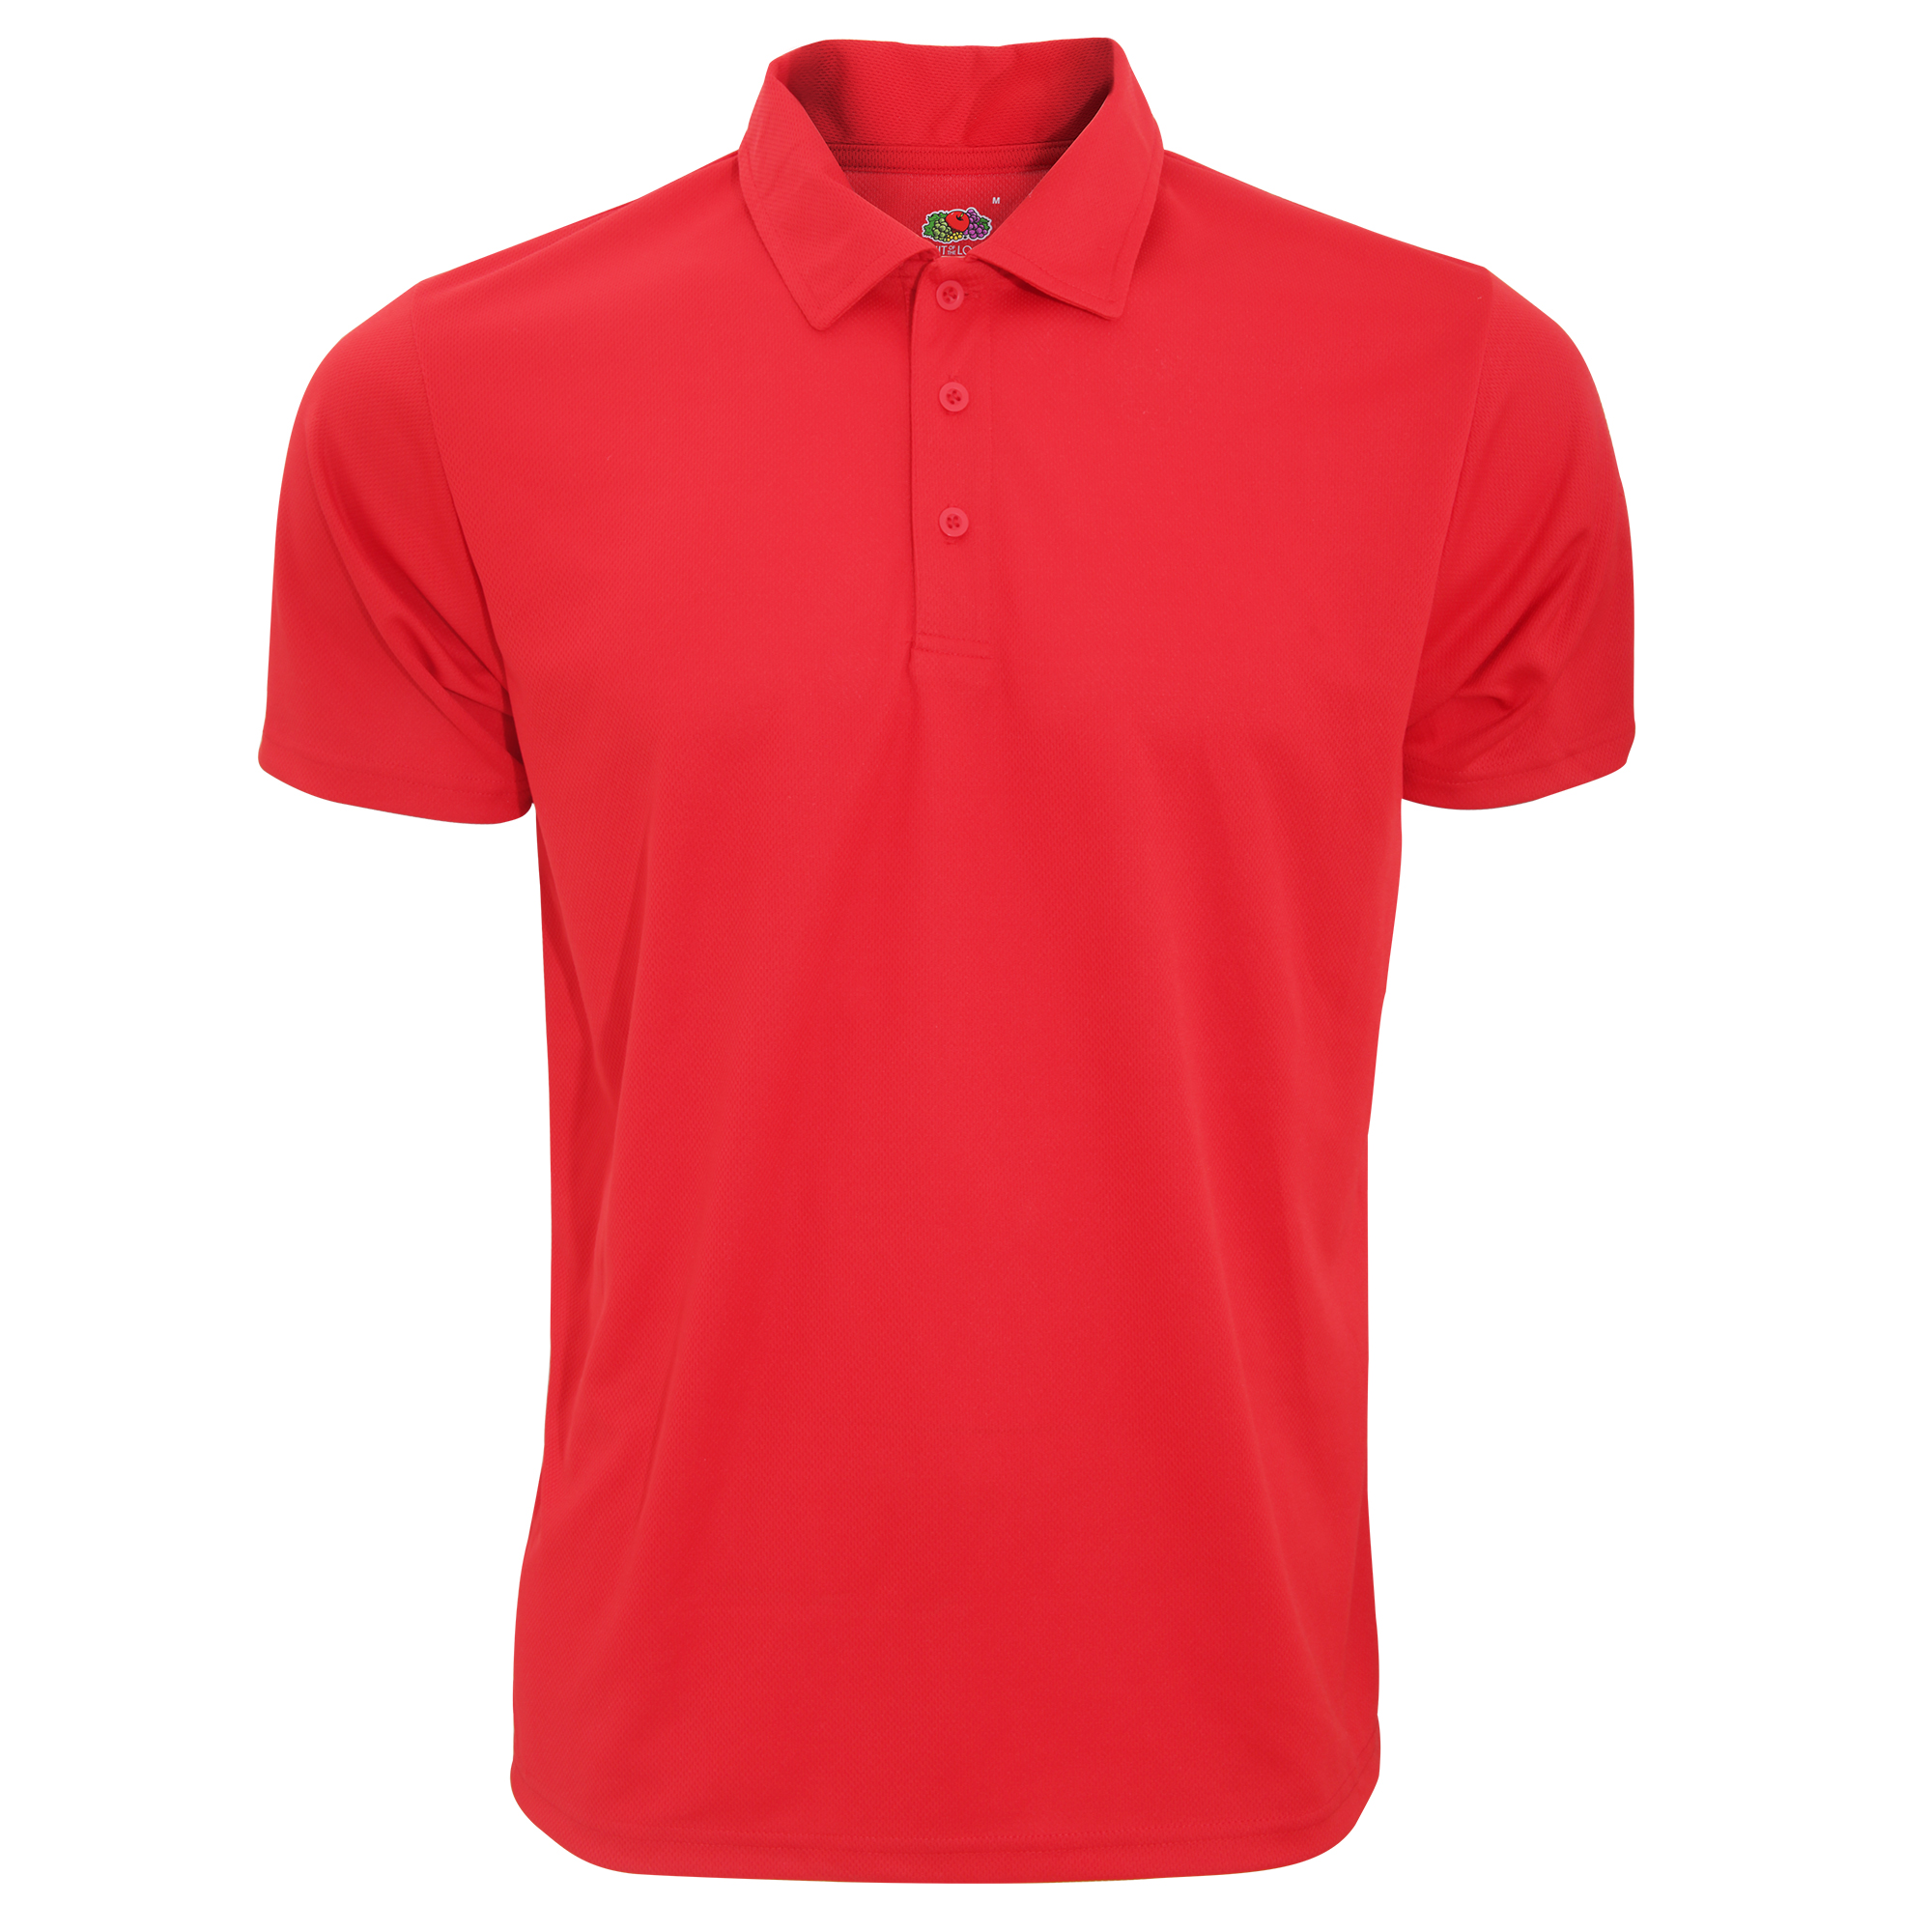 Fruit Of The Loom Mens Moisture Wicking Short Sleeve Performance Polo Shirt (S) (Red)